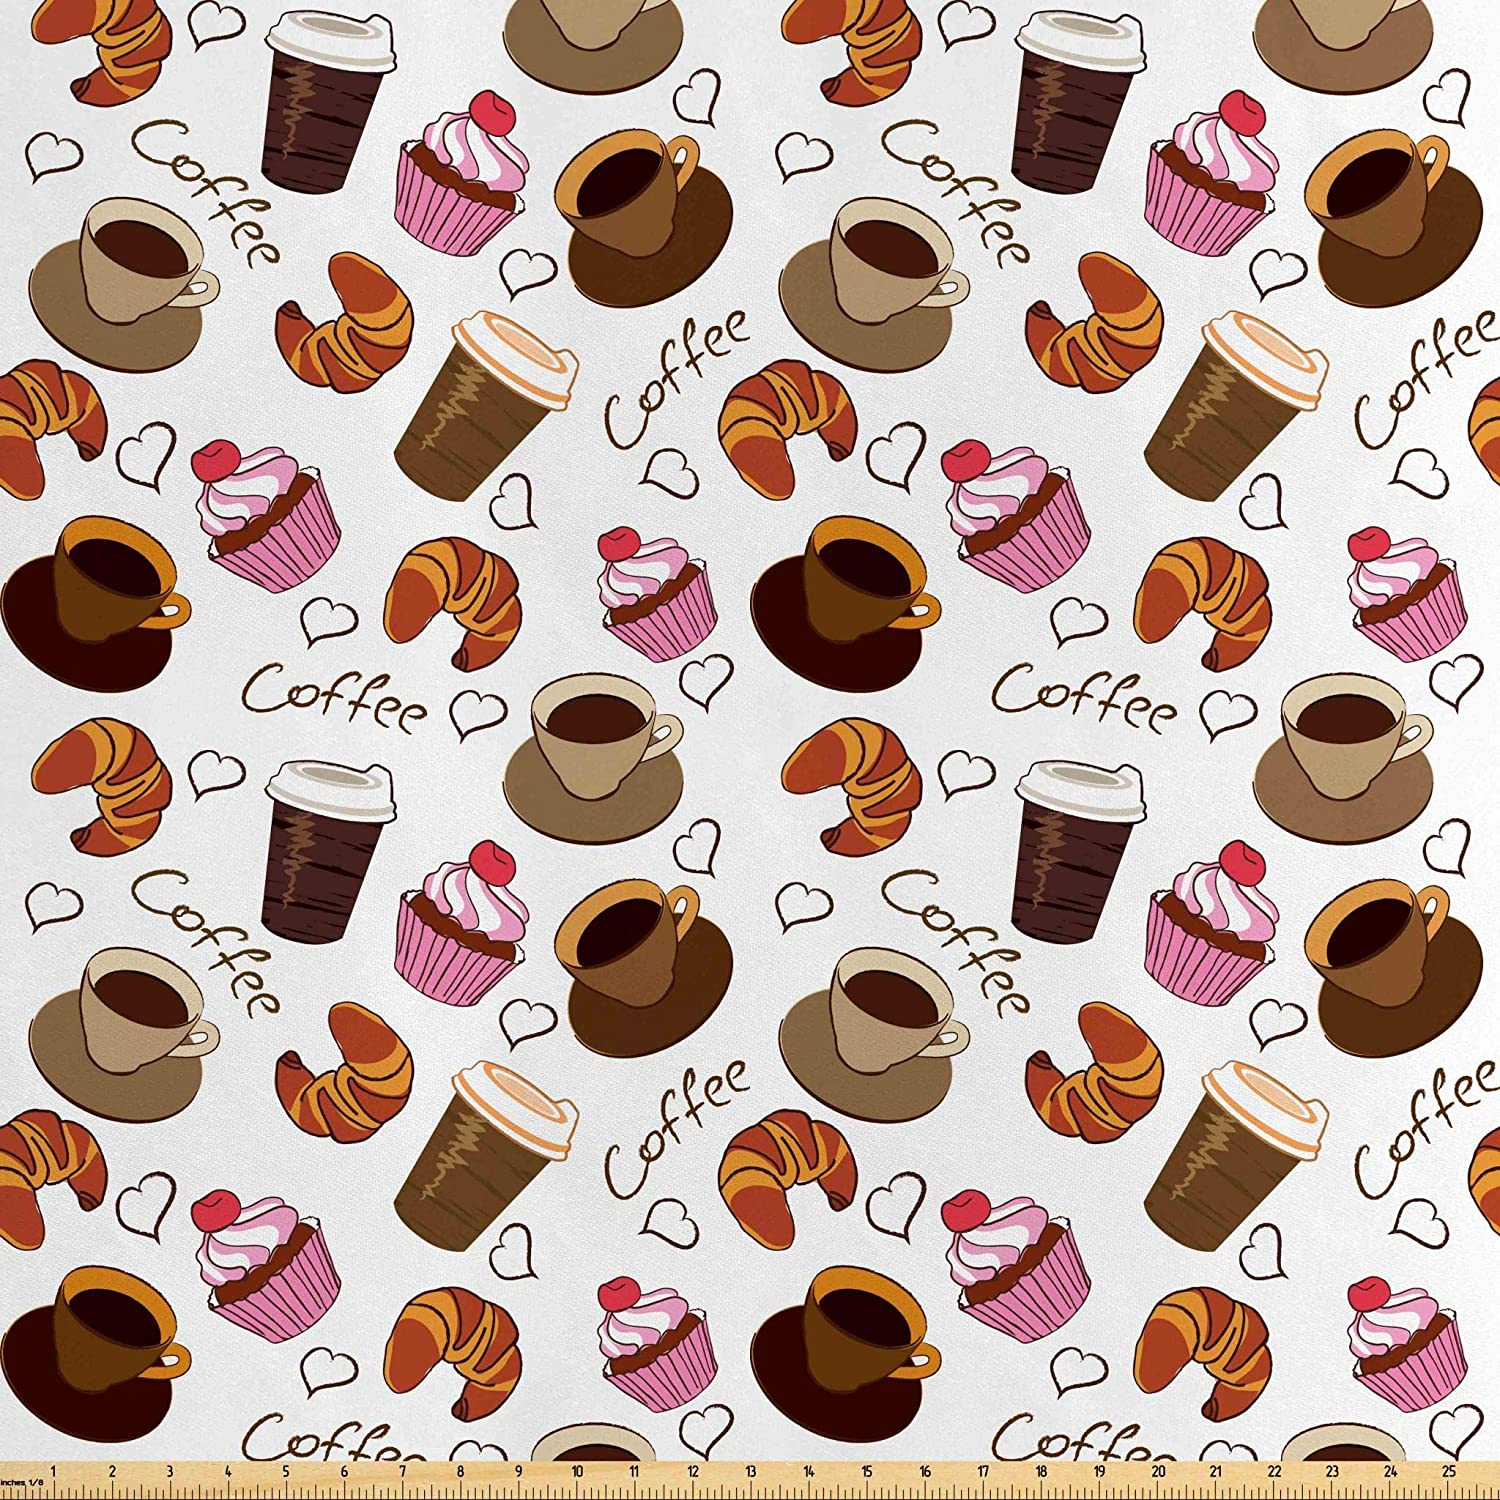 Lunarable Coffee Fabric by The Yard, Coffee Cups Takeaways and Sweets Cherry Cupcake Croissant American Breakfast Culture, Decorative Satin Fabric for Home Textiles and Crafts, 1 Yard, Brown Pink